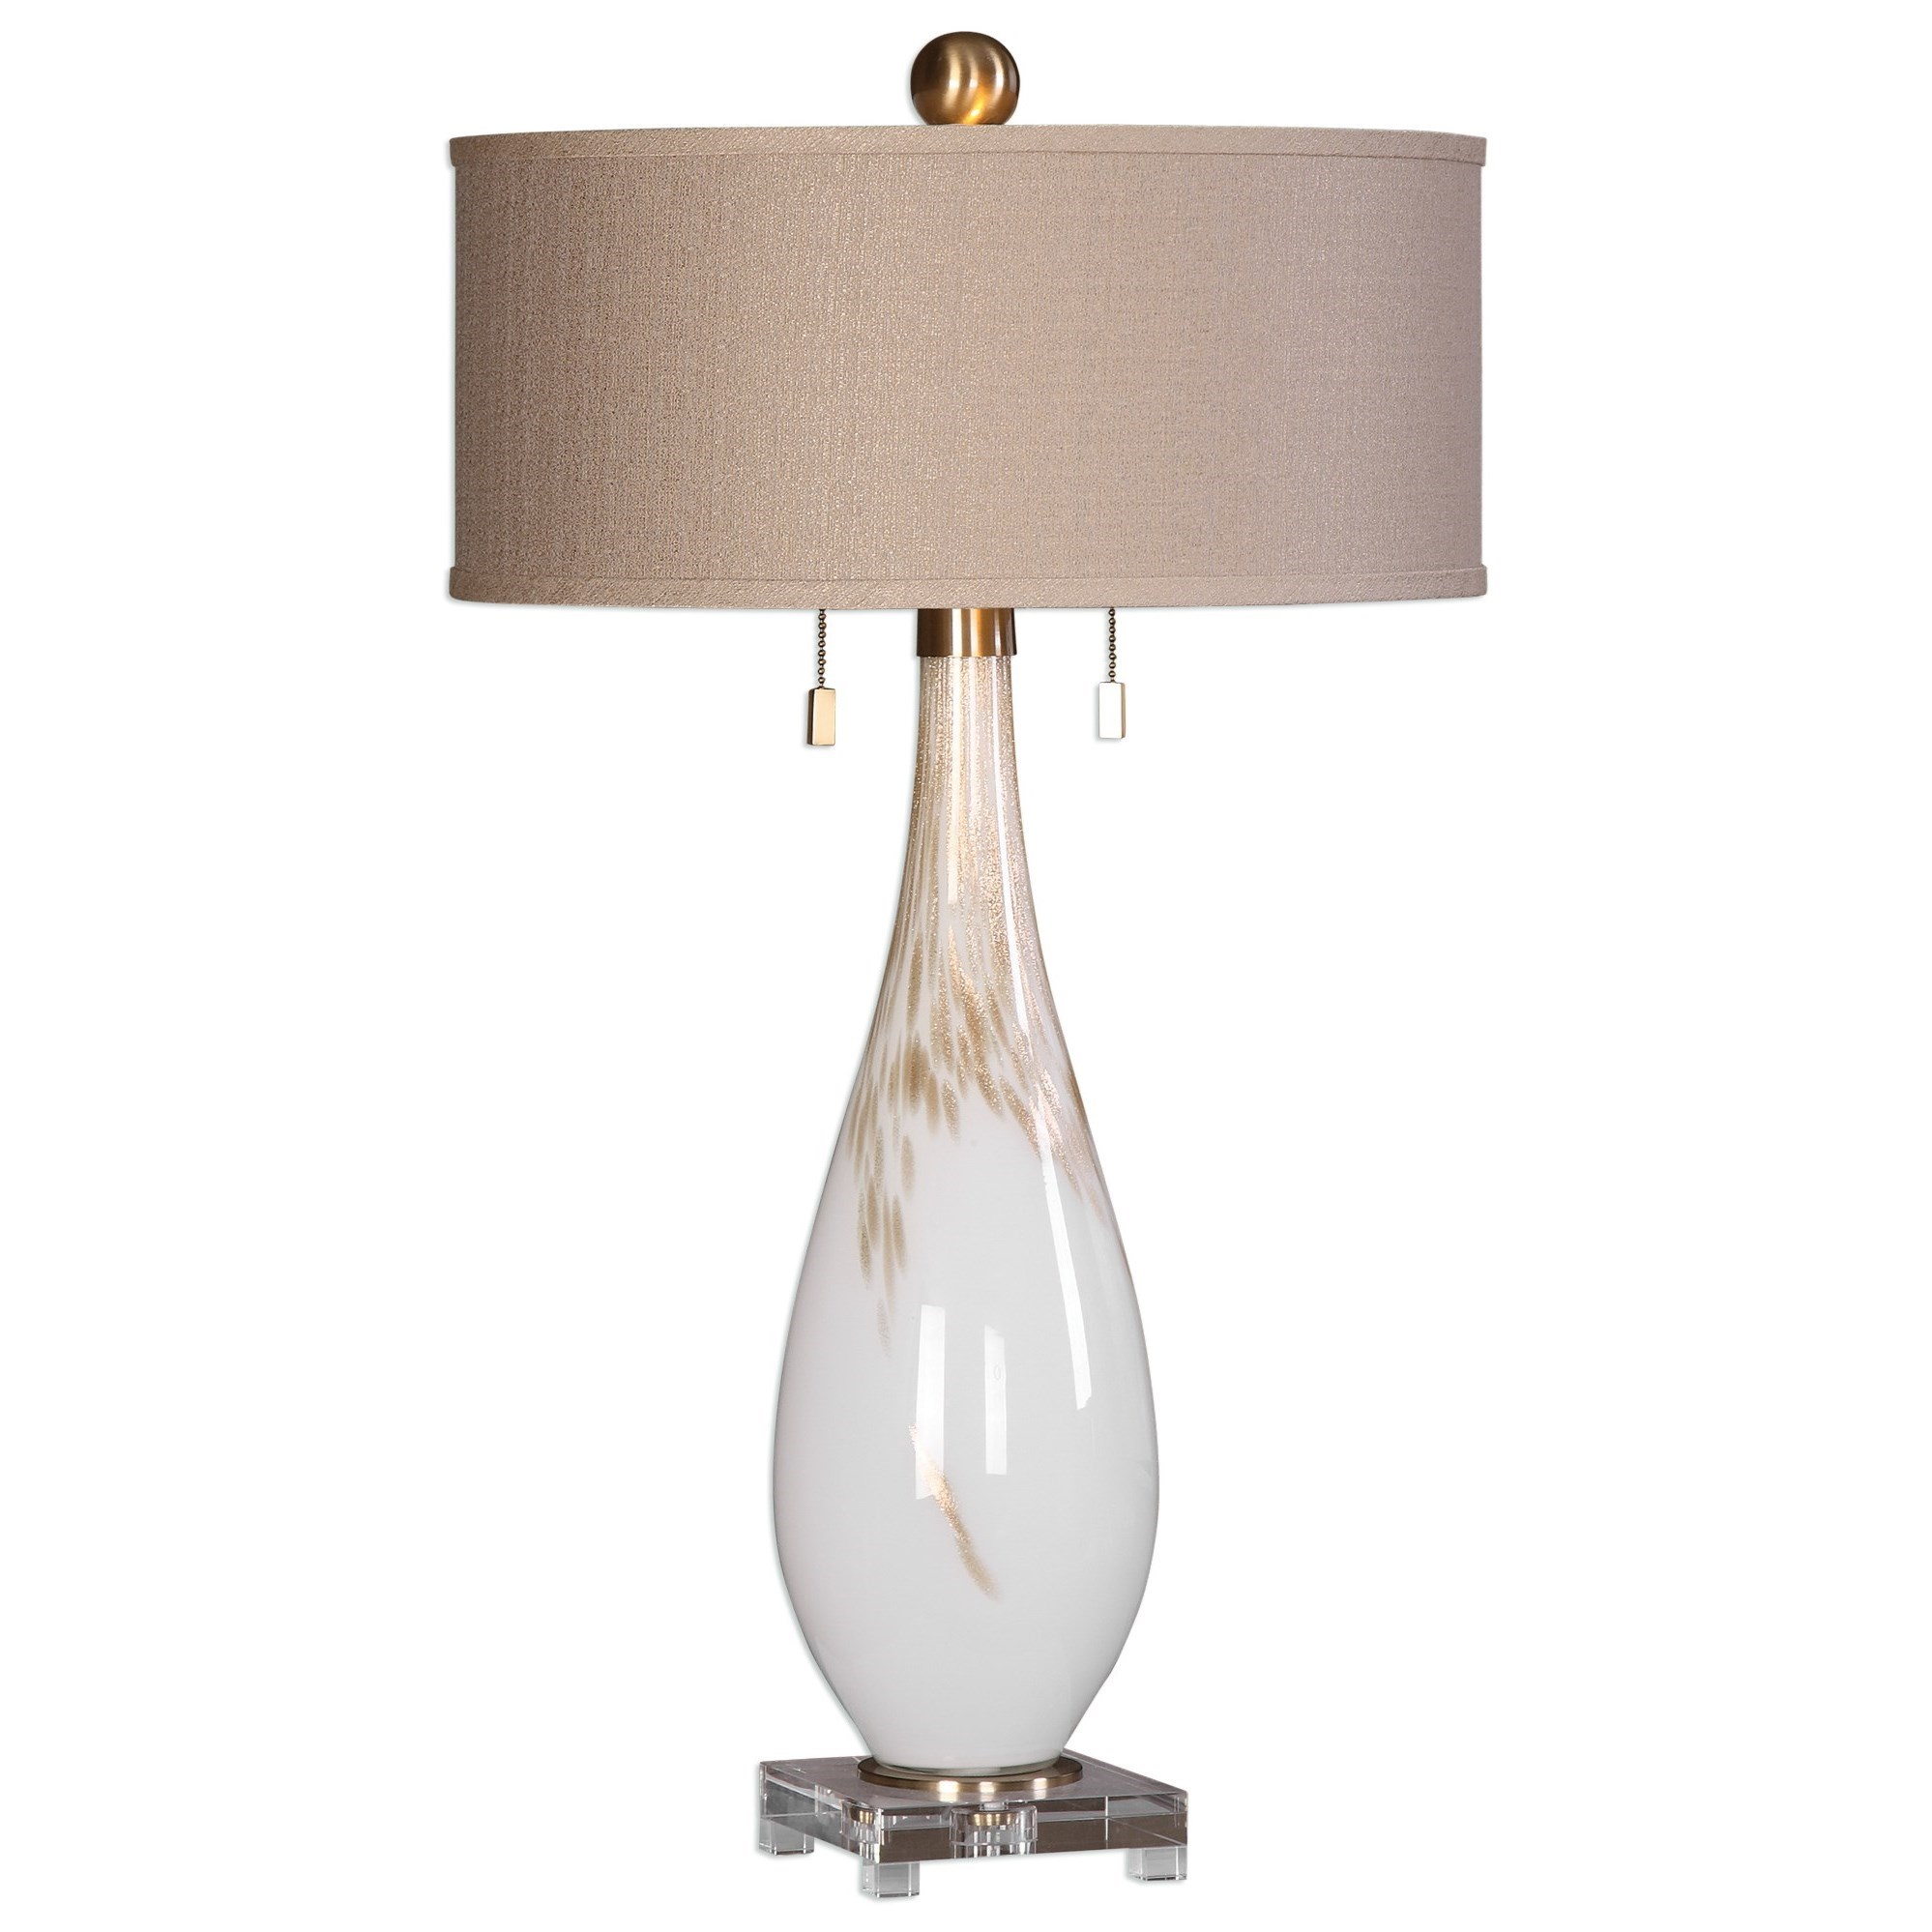 Table Lamps Cardoni Table Lamp by Uttermost at Furniture Superstore - Rochester, MN